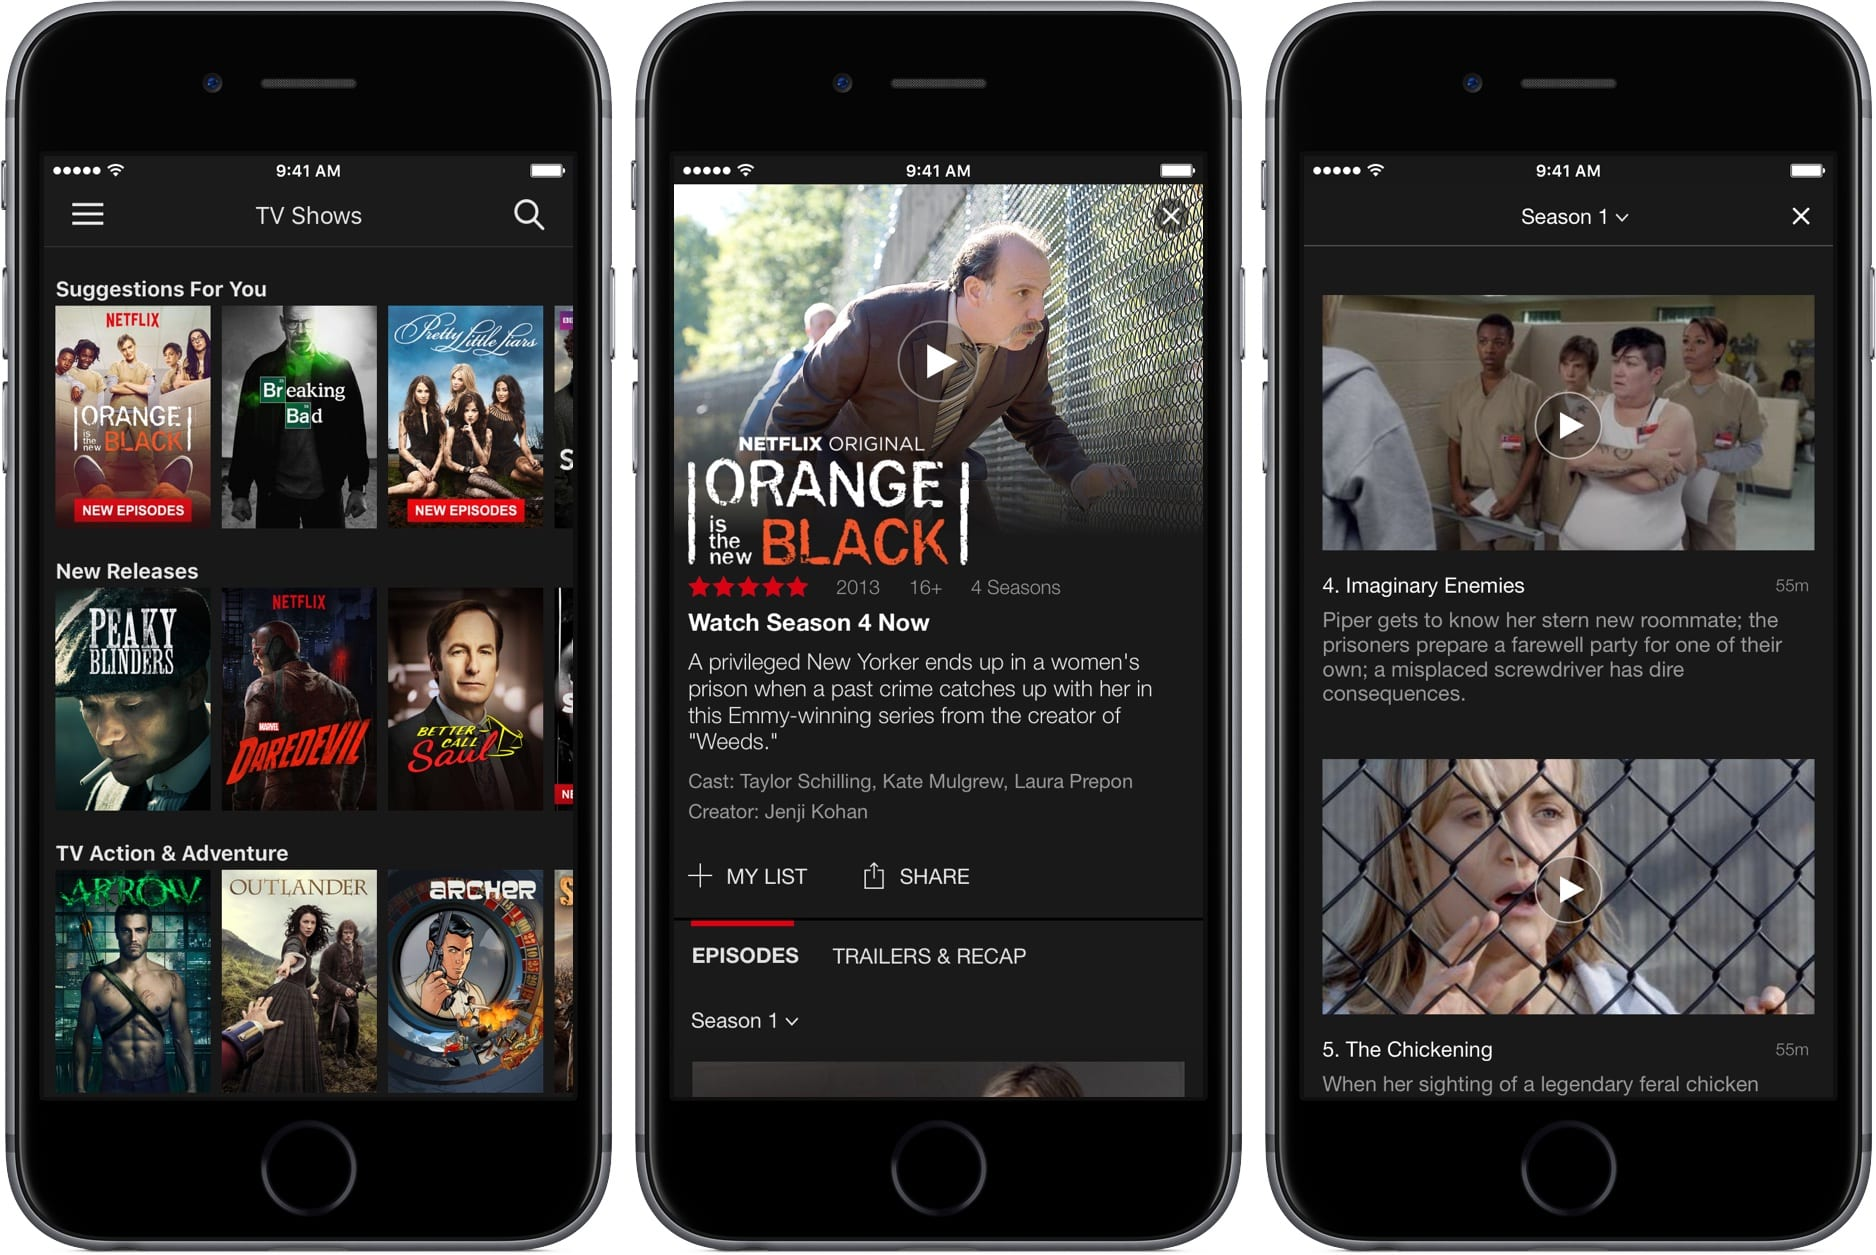 Netflix 8.7 for iOS space gray iPhone screenshot 001 - Netflix nechce, aby ste si ho predplácali cez Apple